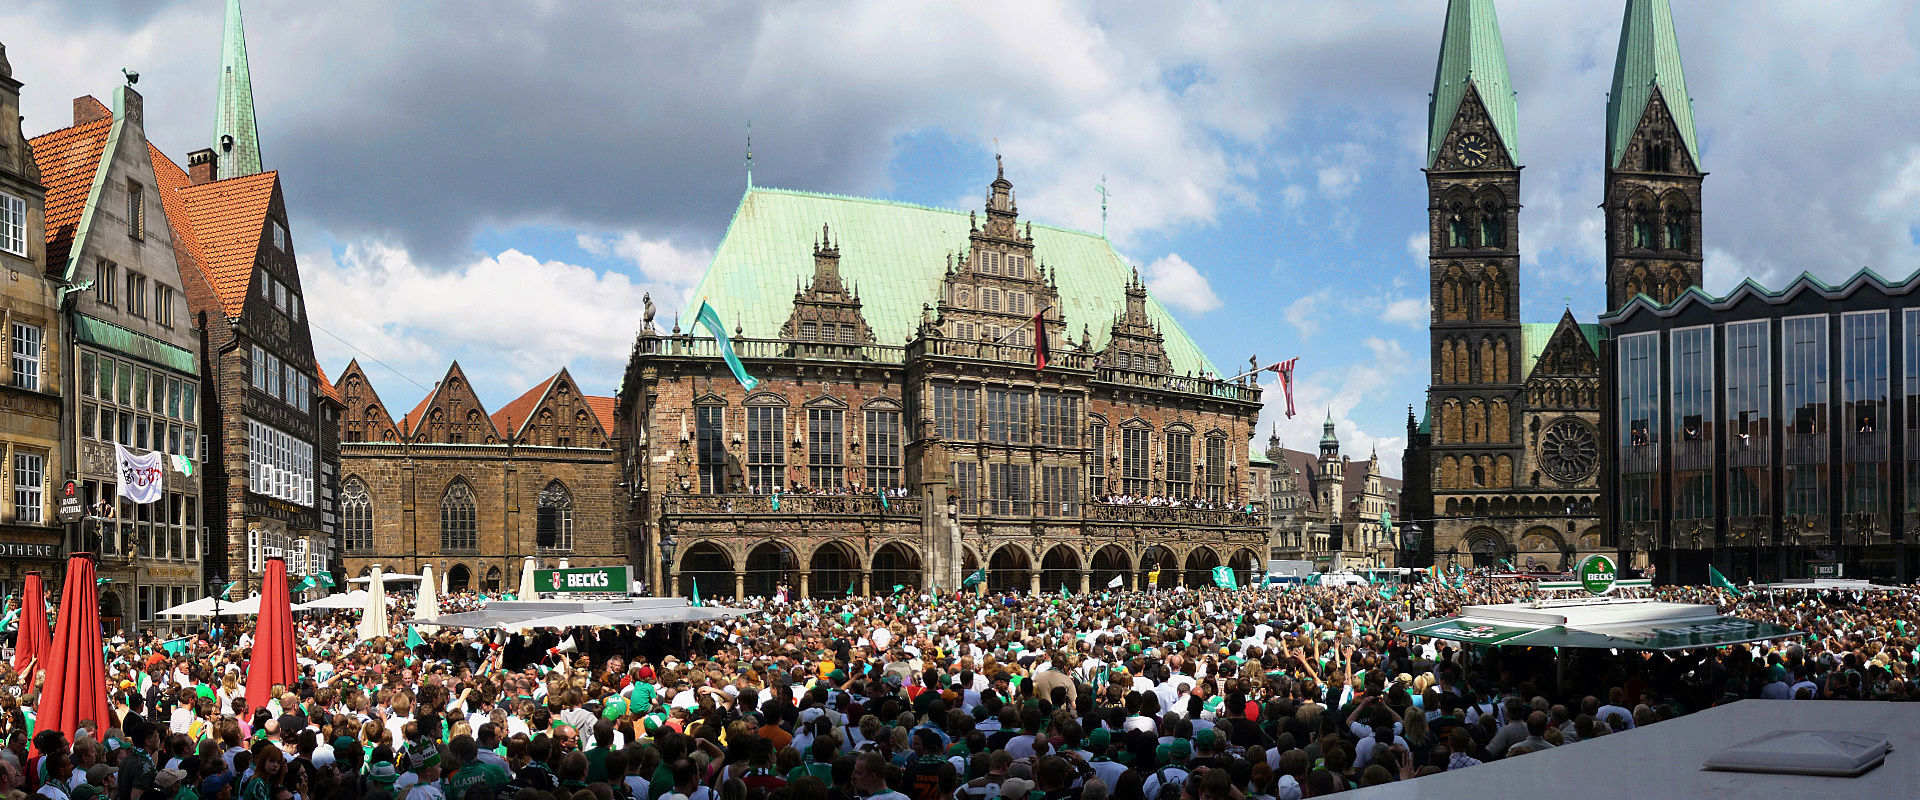 Popular On Amazon Here S Why Bremen In Germany Is The Ideal City For